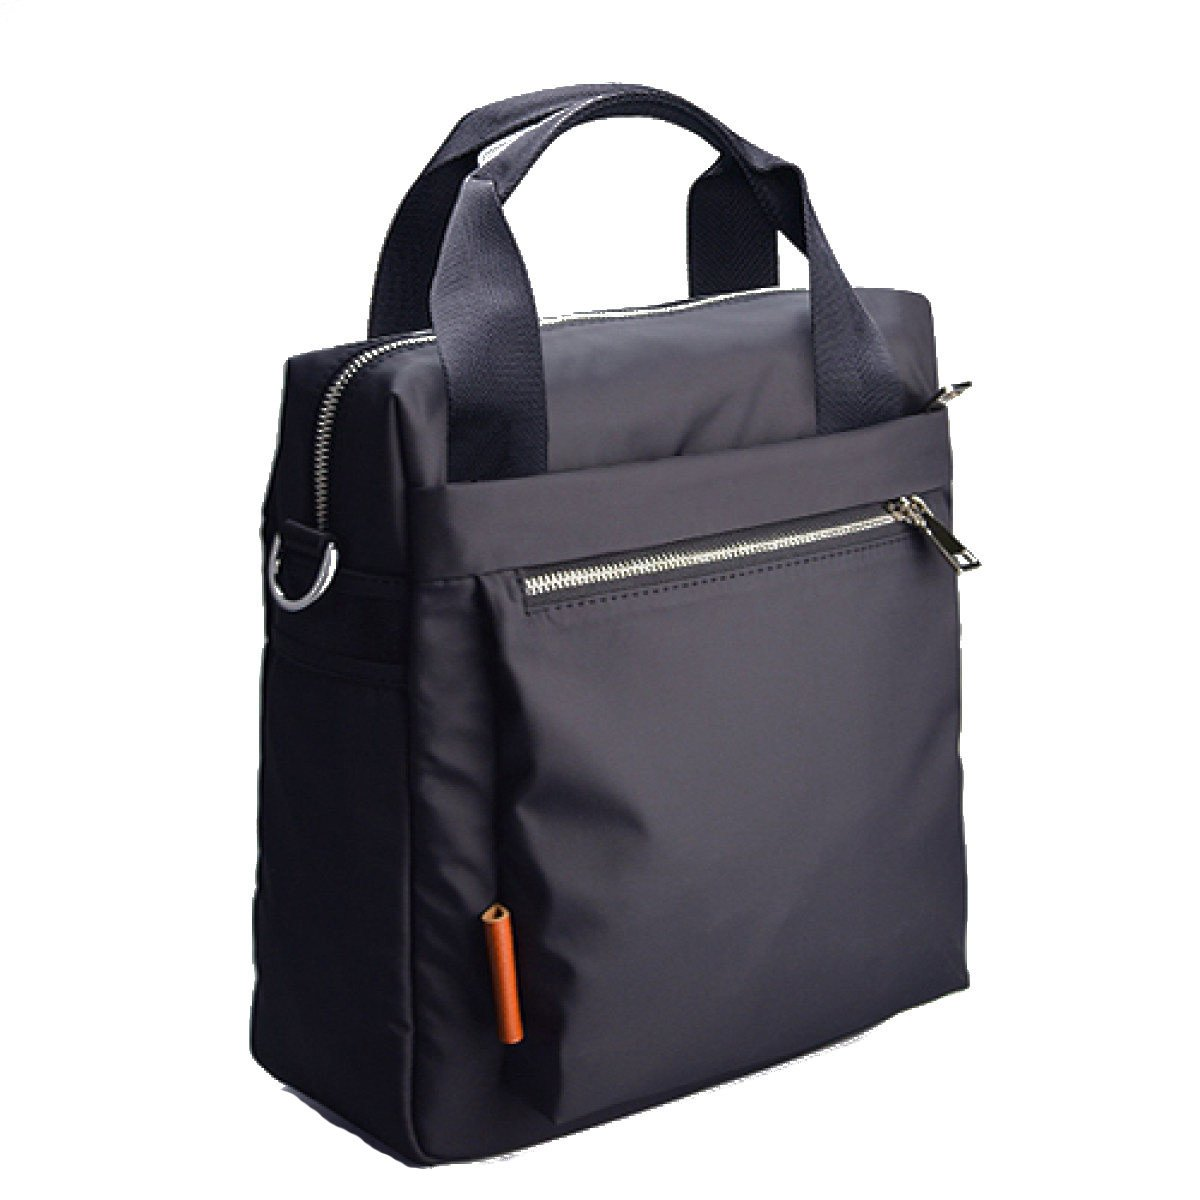 SJLN Men 8 Inch Waterproof Notebook Computer Bag Portable Shoulder Diagonal Package Briefcase Oxford Spinning Simple Retro Business English Bag,Black-OneSize